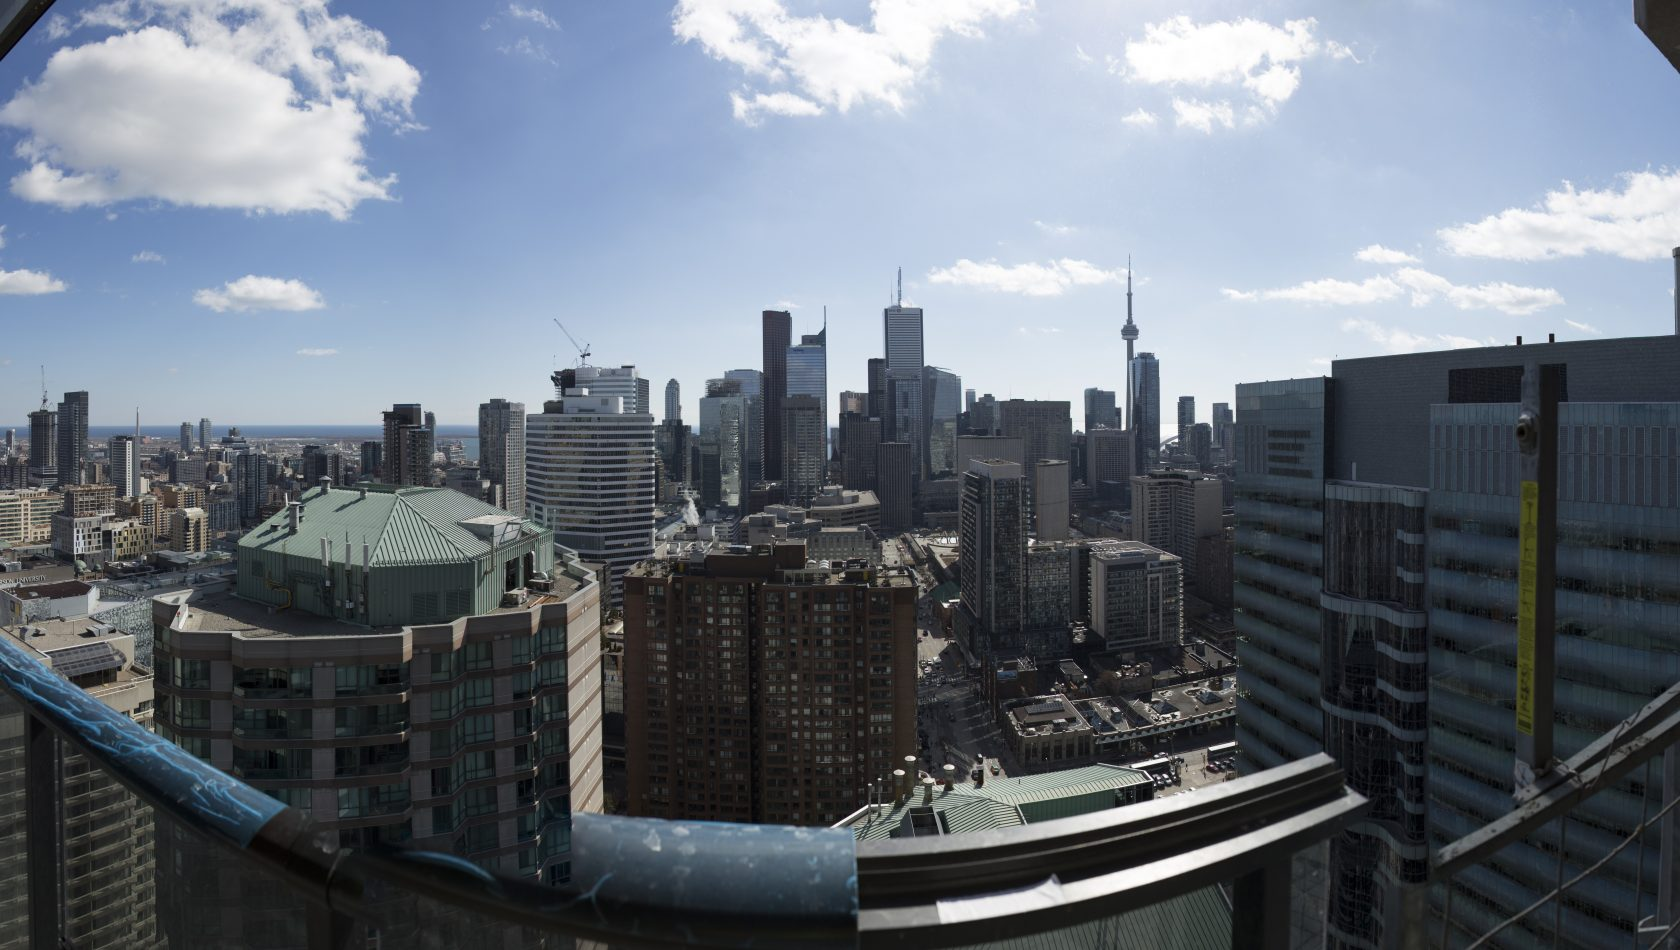 South side view from 35th floor